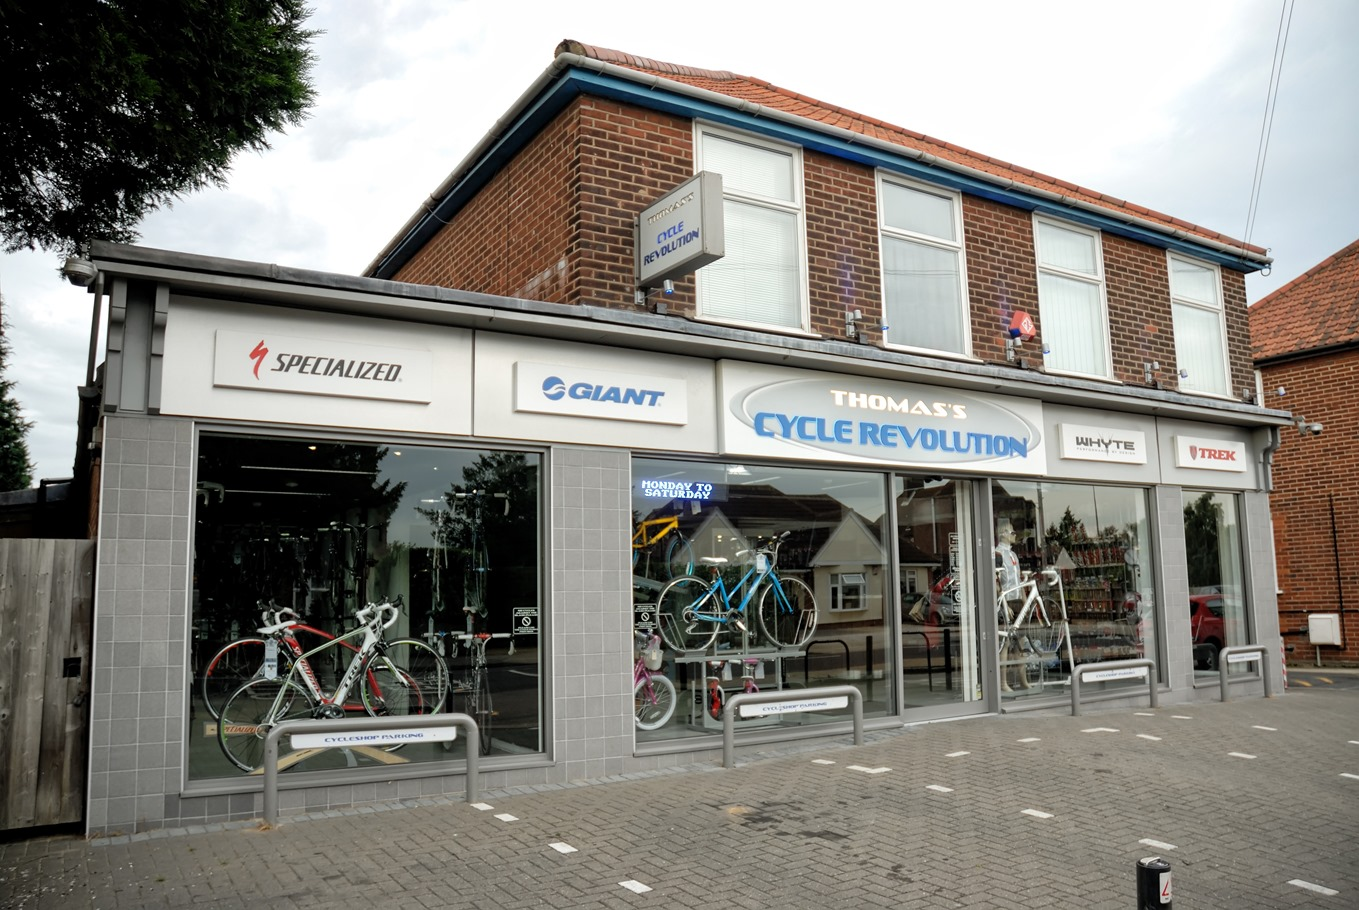 Cycle Revolution Ipswich (27)